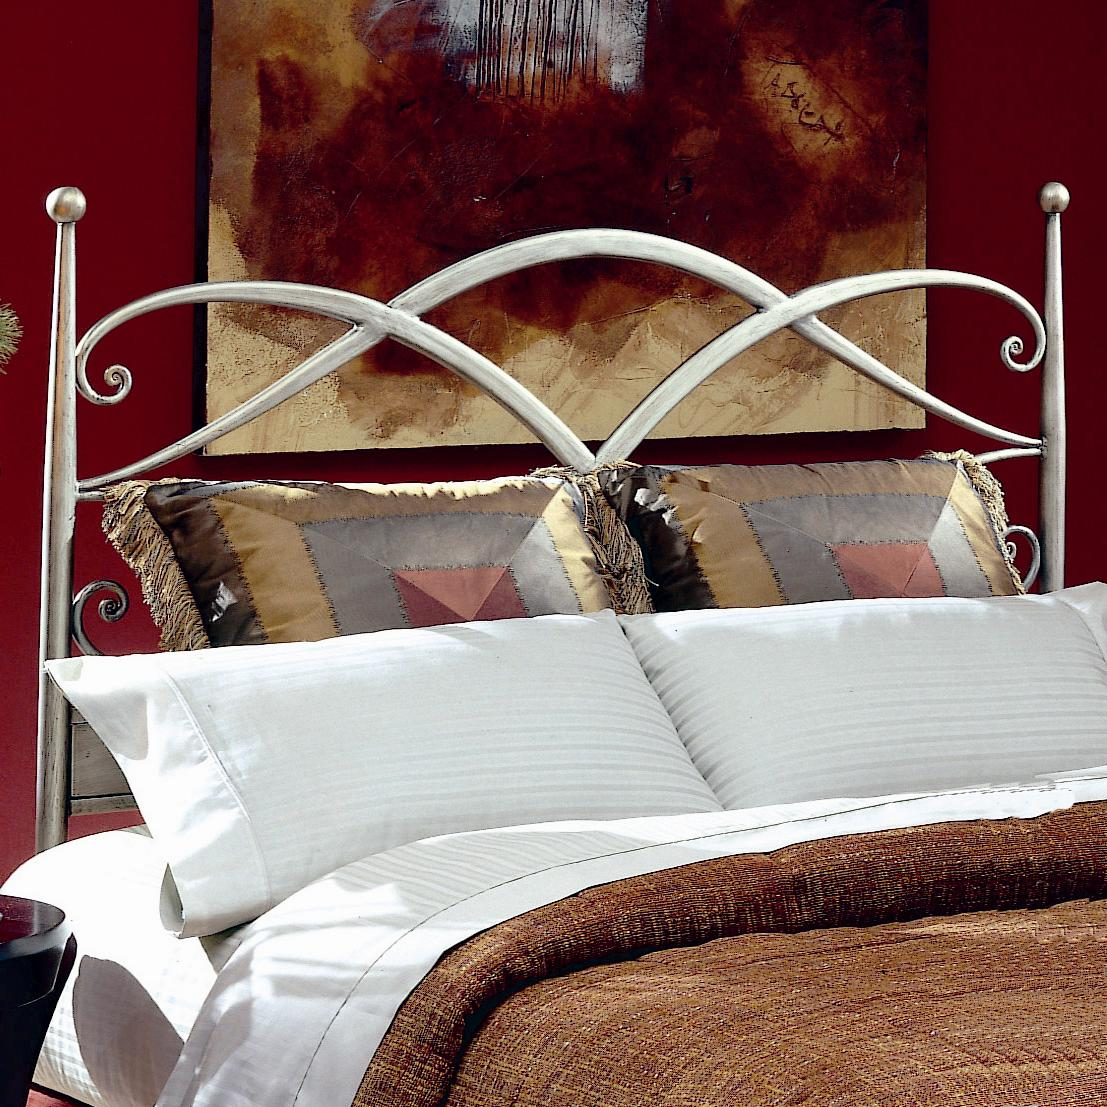 Metal Bed Headboards Metal Beds Queen Cutlass Headboard By Largo At Lindy S Furniture Company